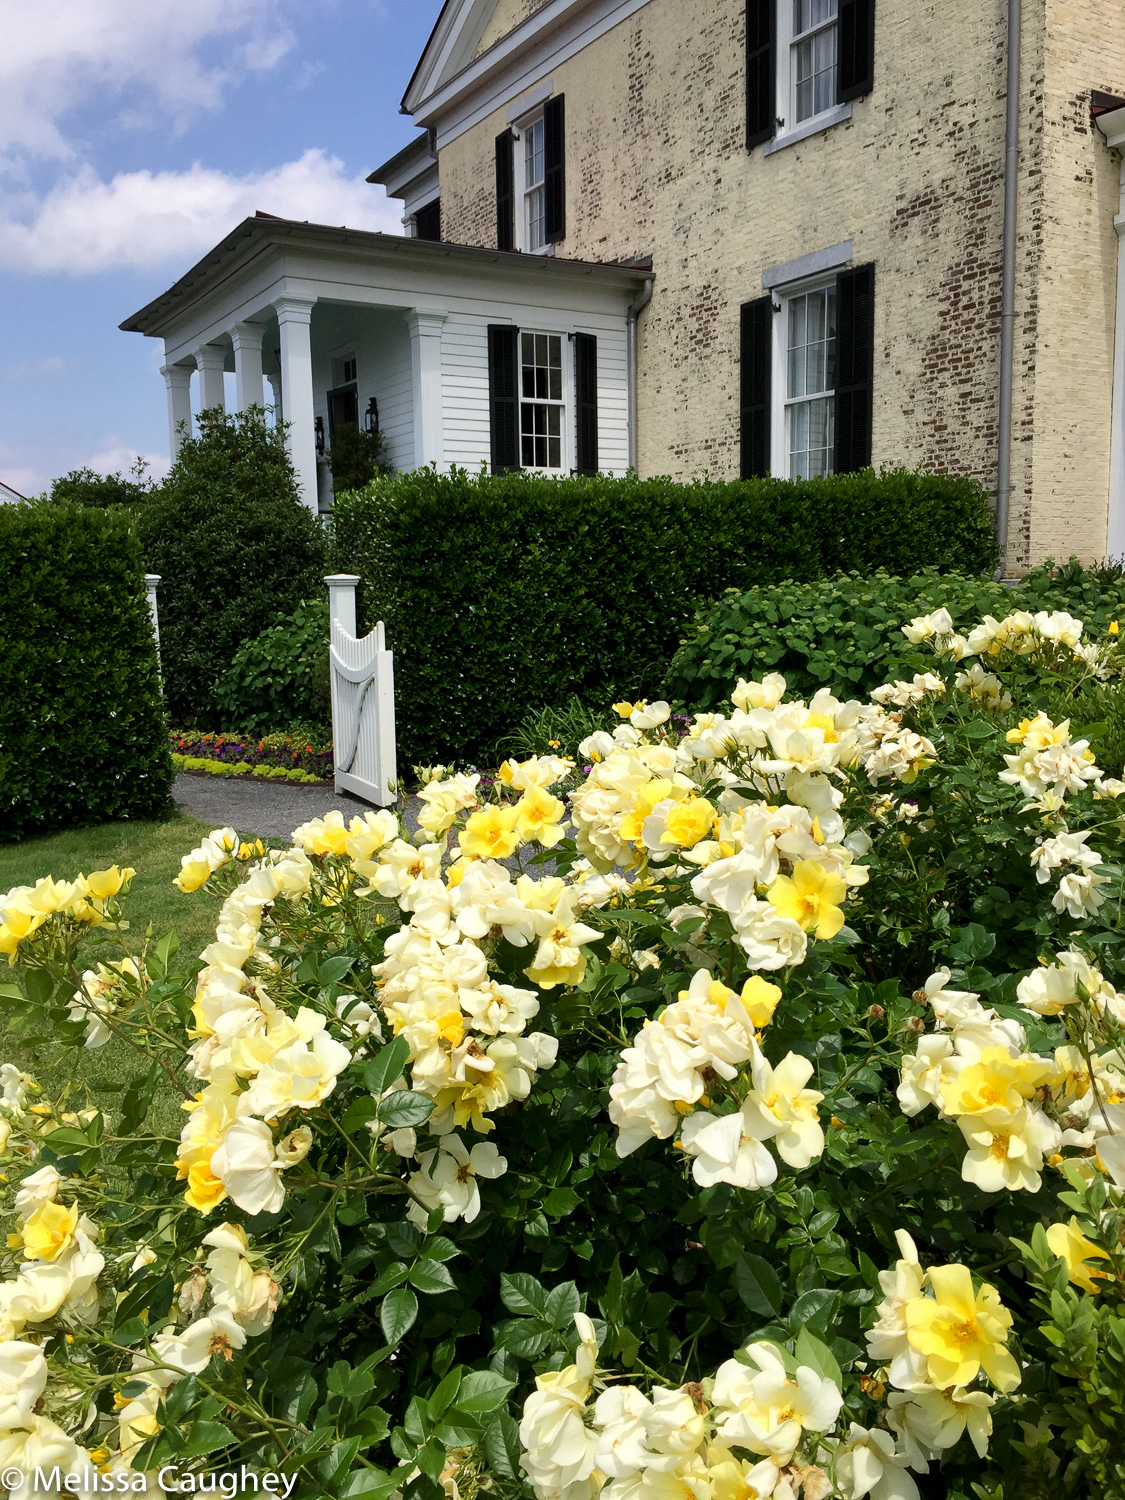 Original_Caughey-MelissaCaughey-garden2grow-sideentryyellowroses